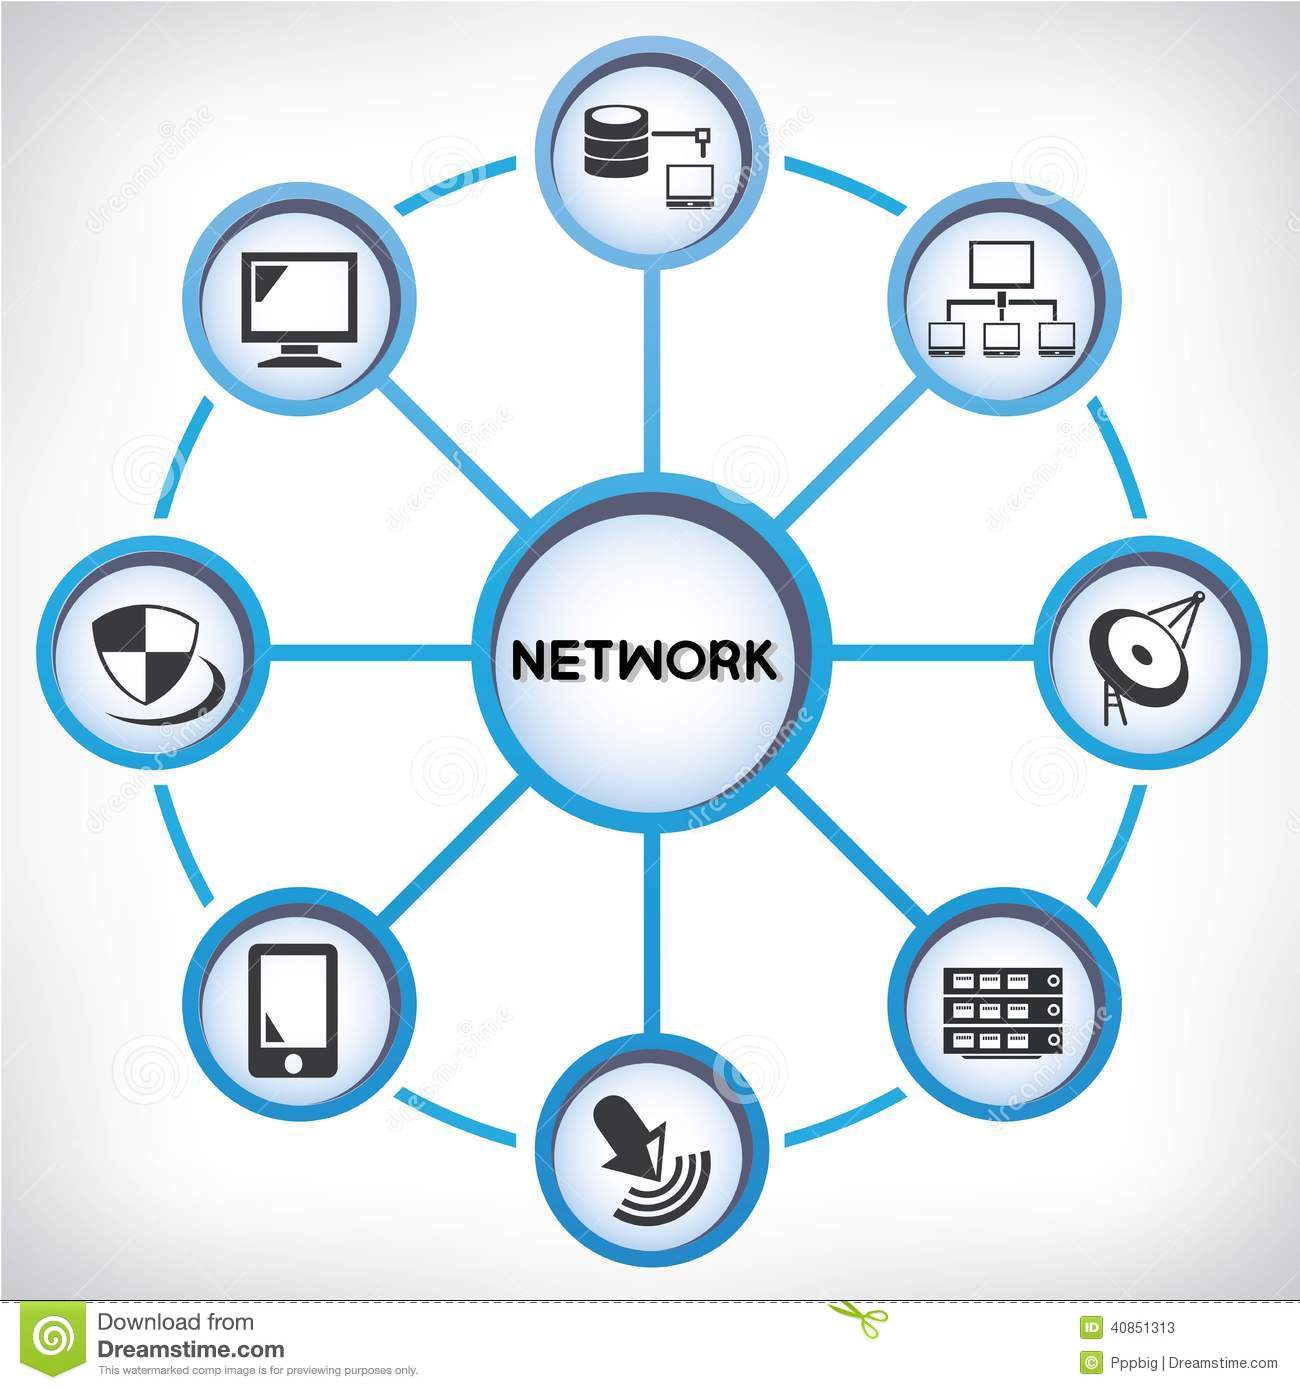 Network Diagram Stock Illustration